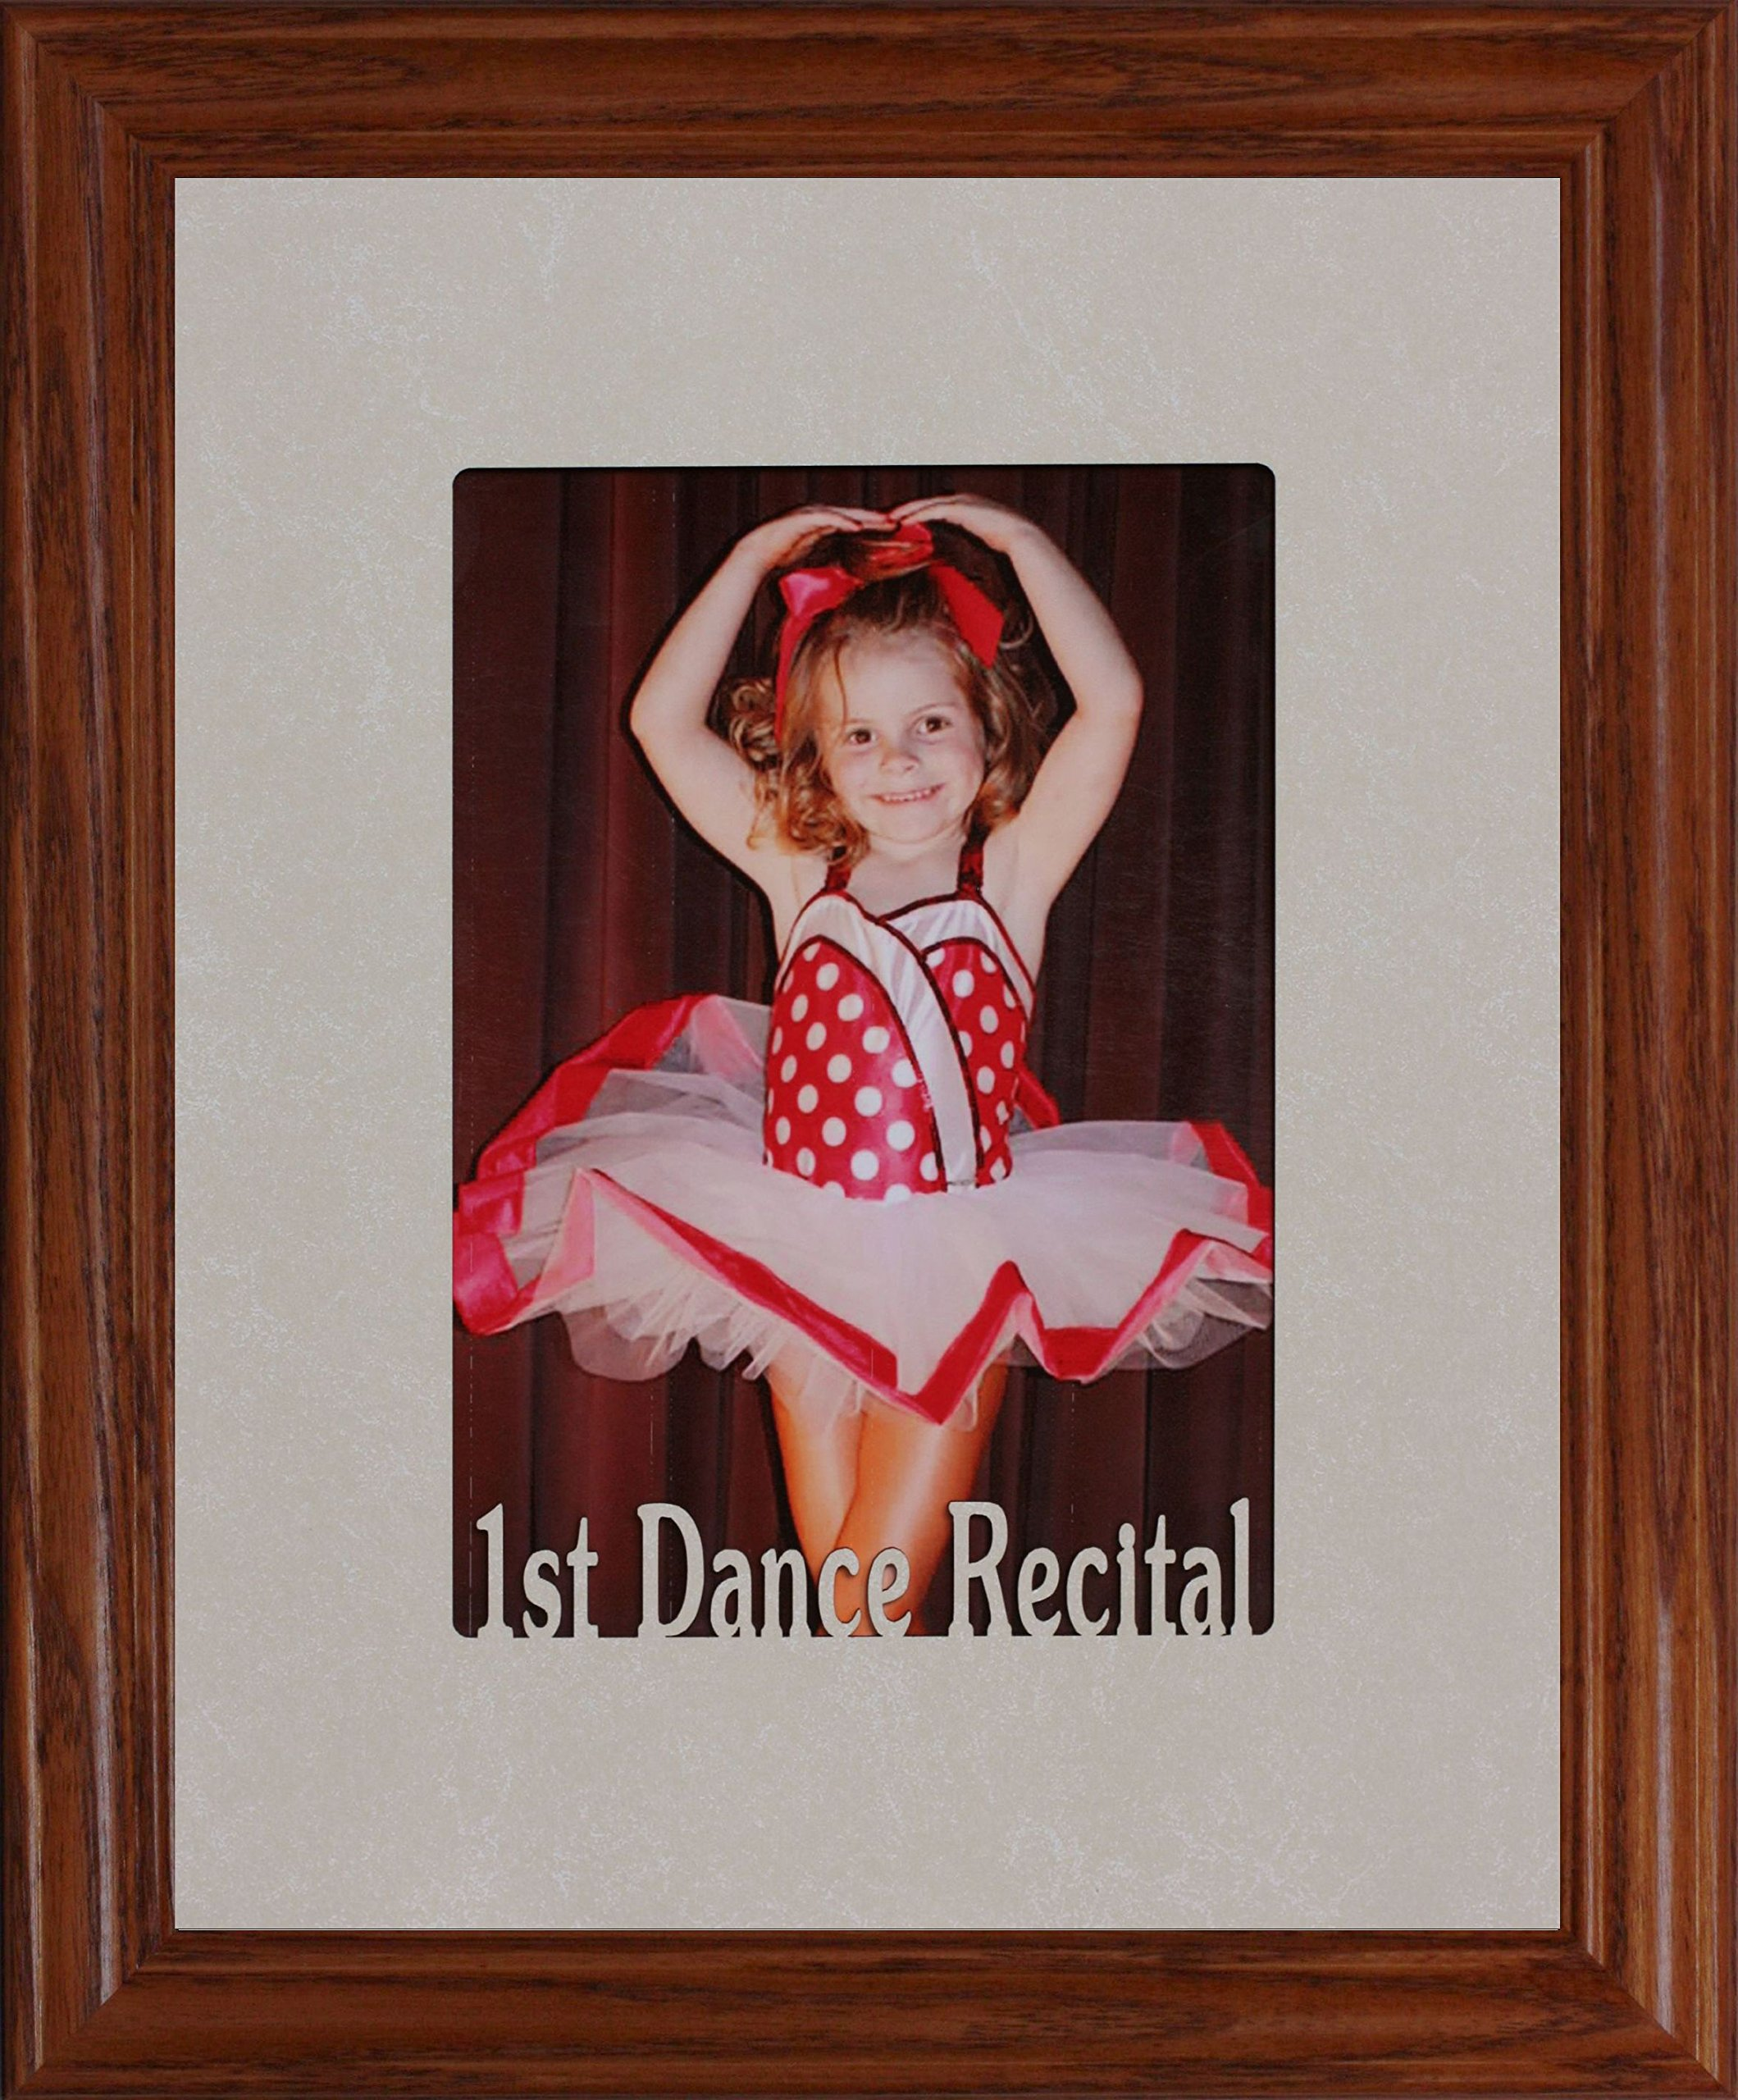 1st DANCE RECITAL Frame ~ Holds a Portrait 5x7 Picture/Photo (FRUITWOOD)